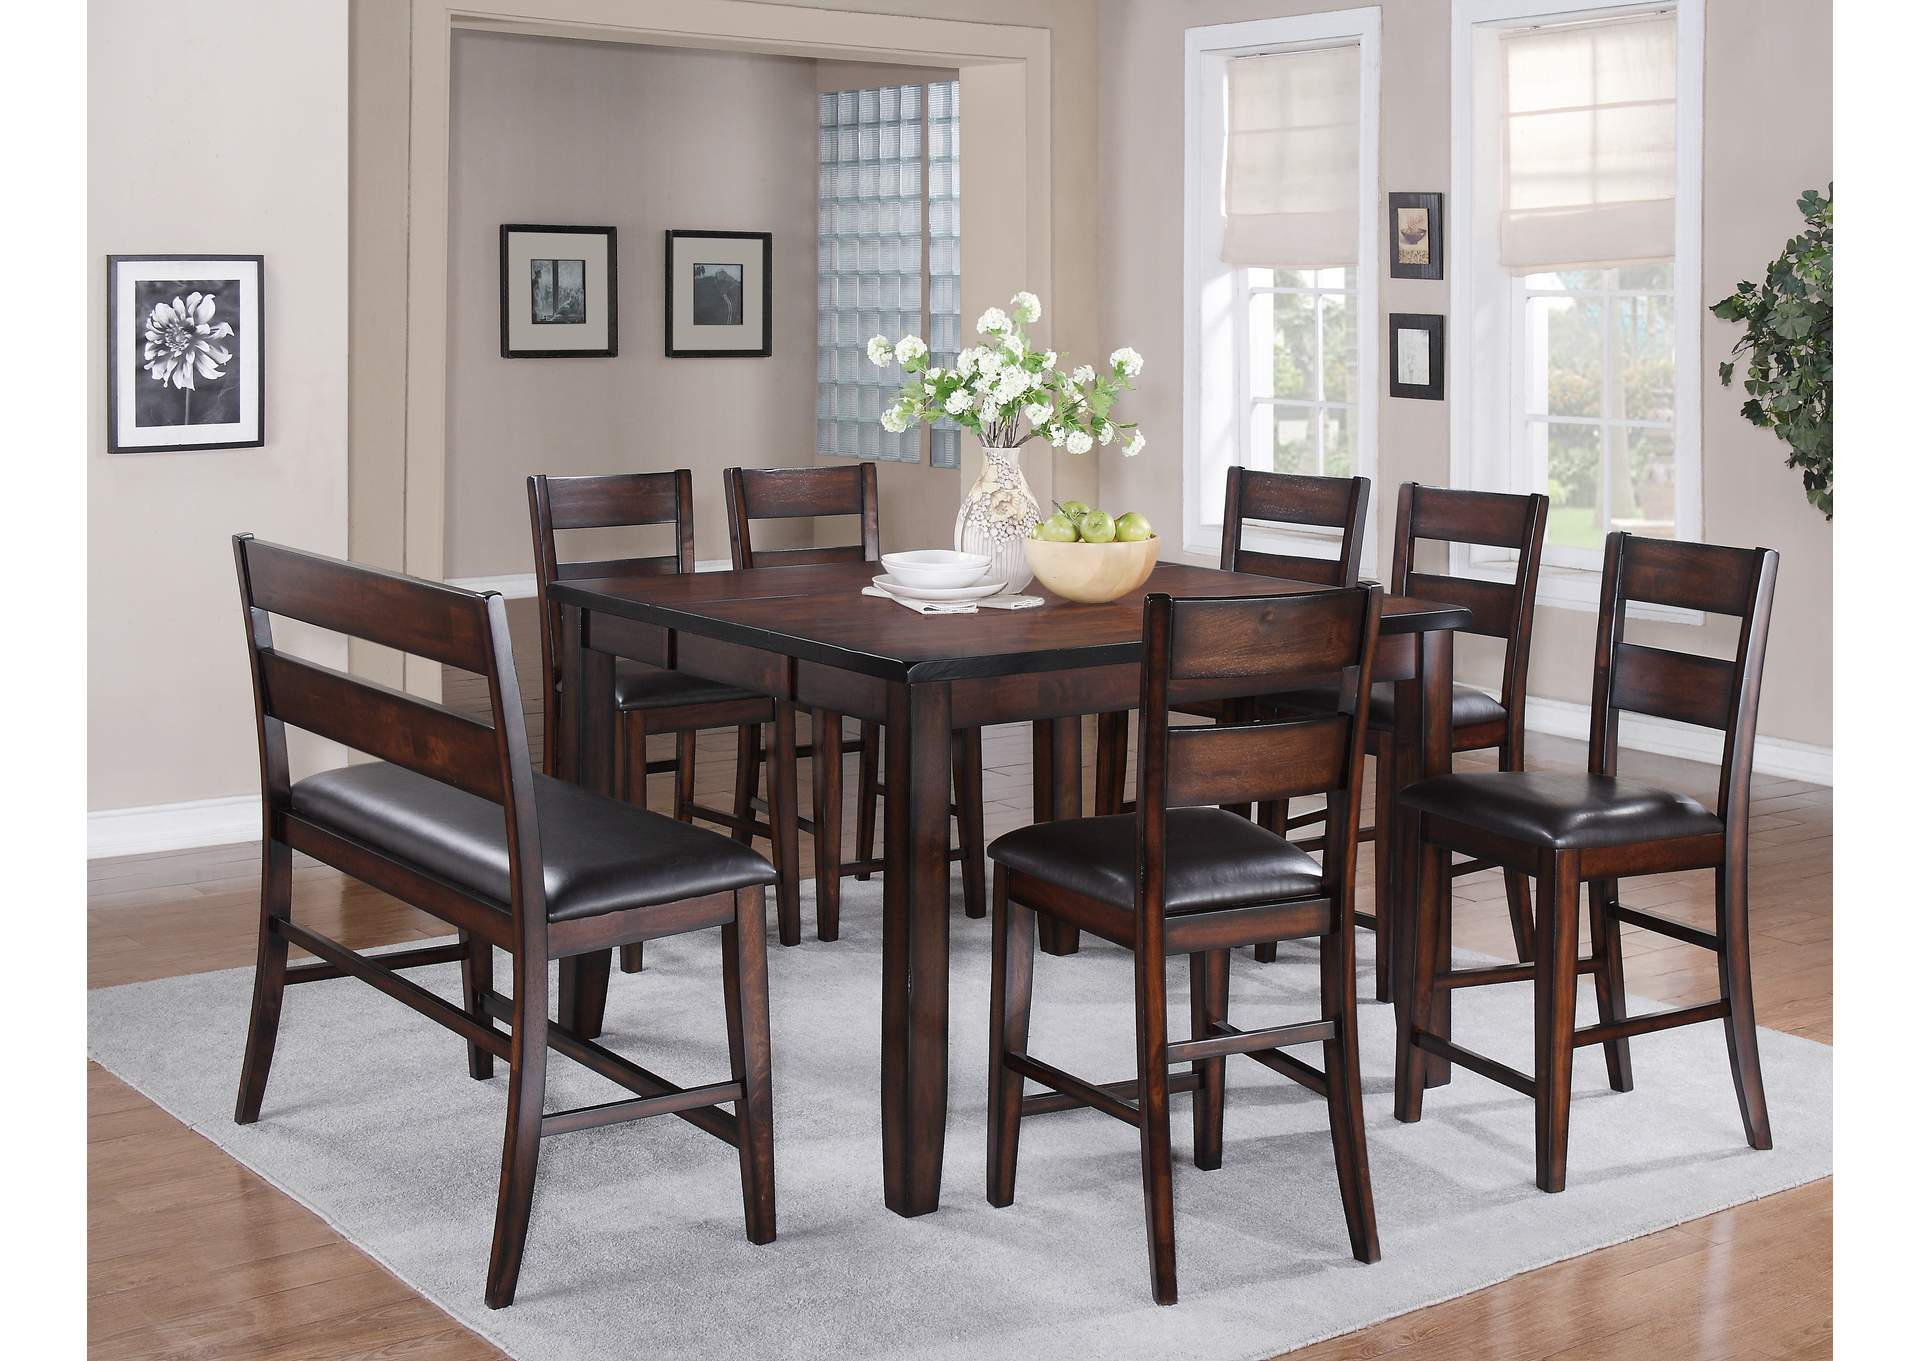 Maldives Counter Height Table w/ 4 Counter Height Chairs and Hi Back Bench,Crown Mark